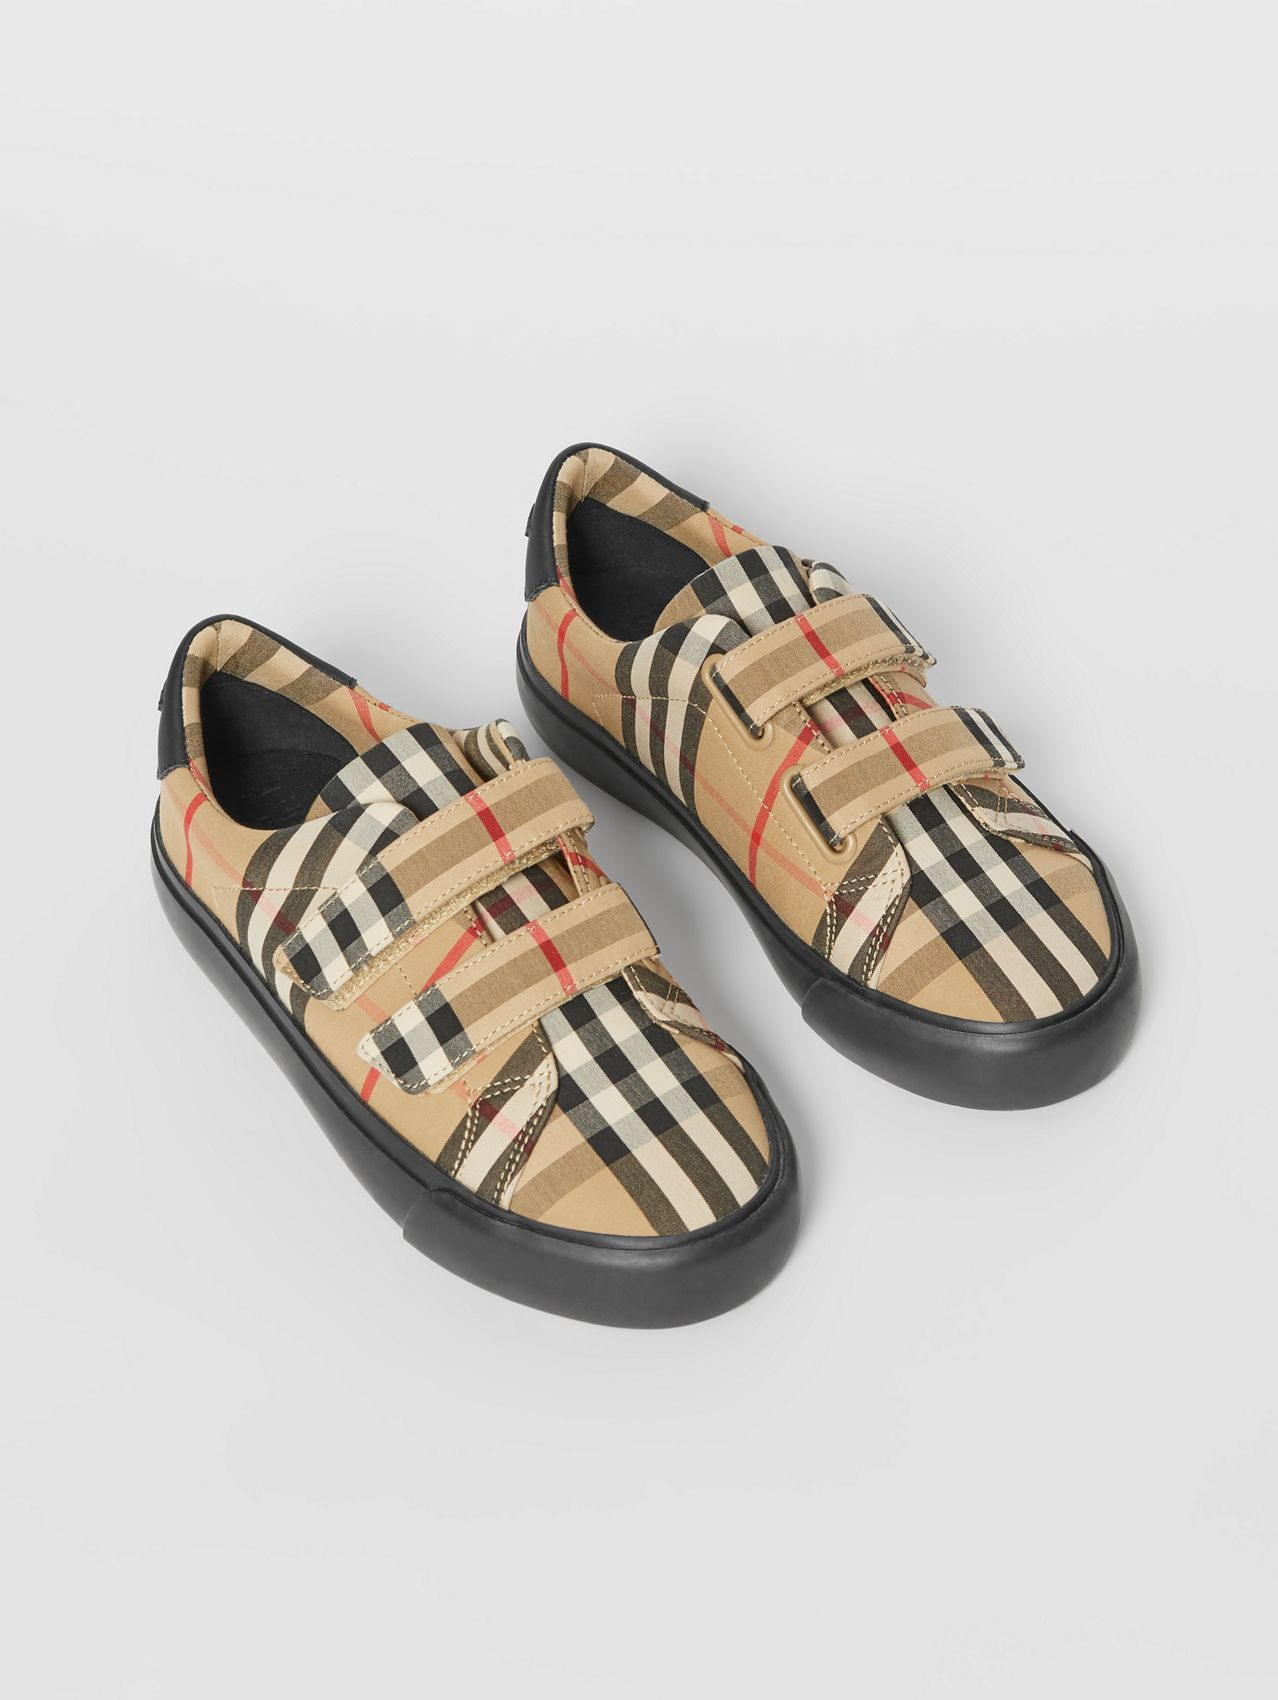 Vintage Check Cotton Sneakers (Archive Beige/black)